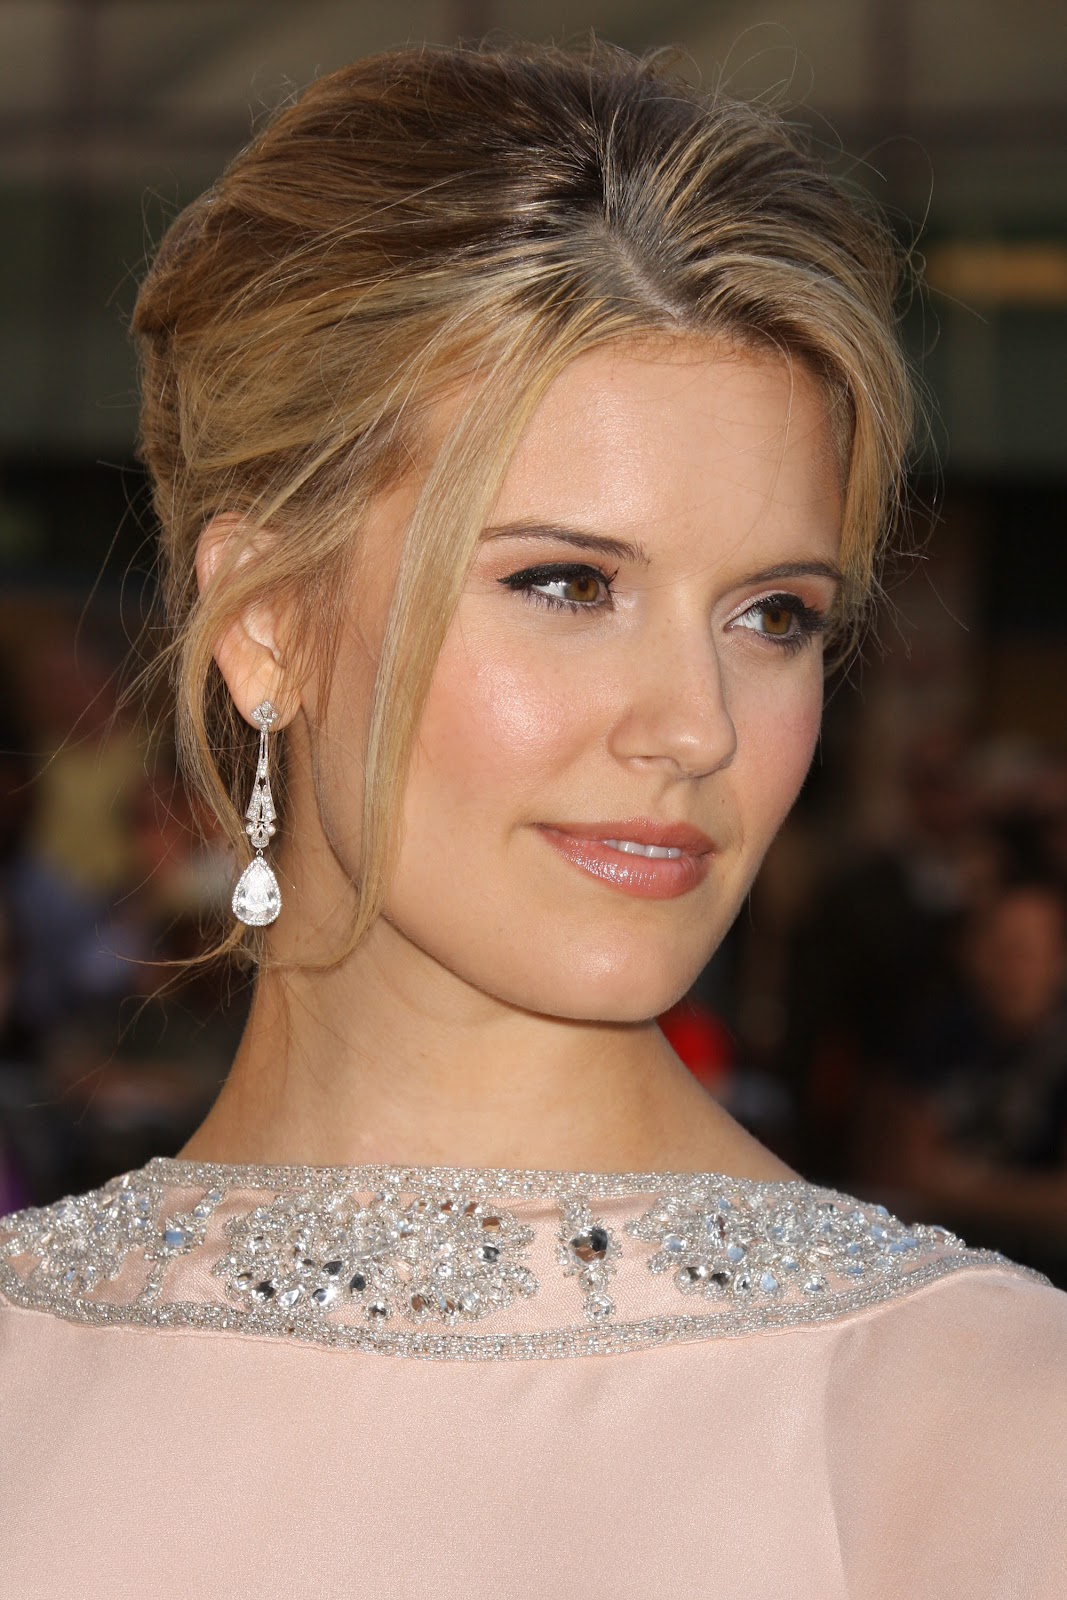 Maggie Grace Profile-Images 2012 | Hollywood Stars